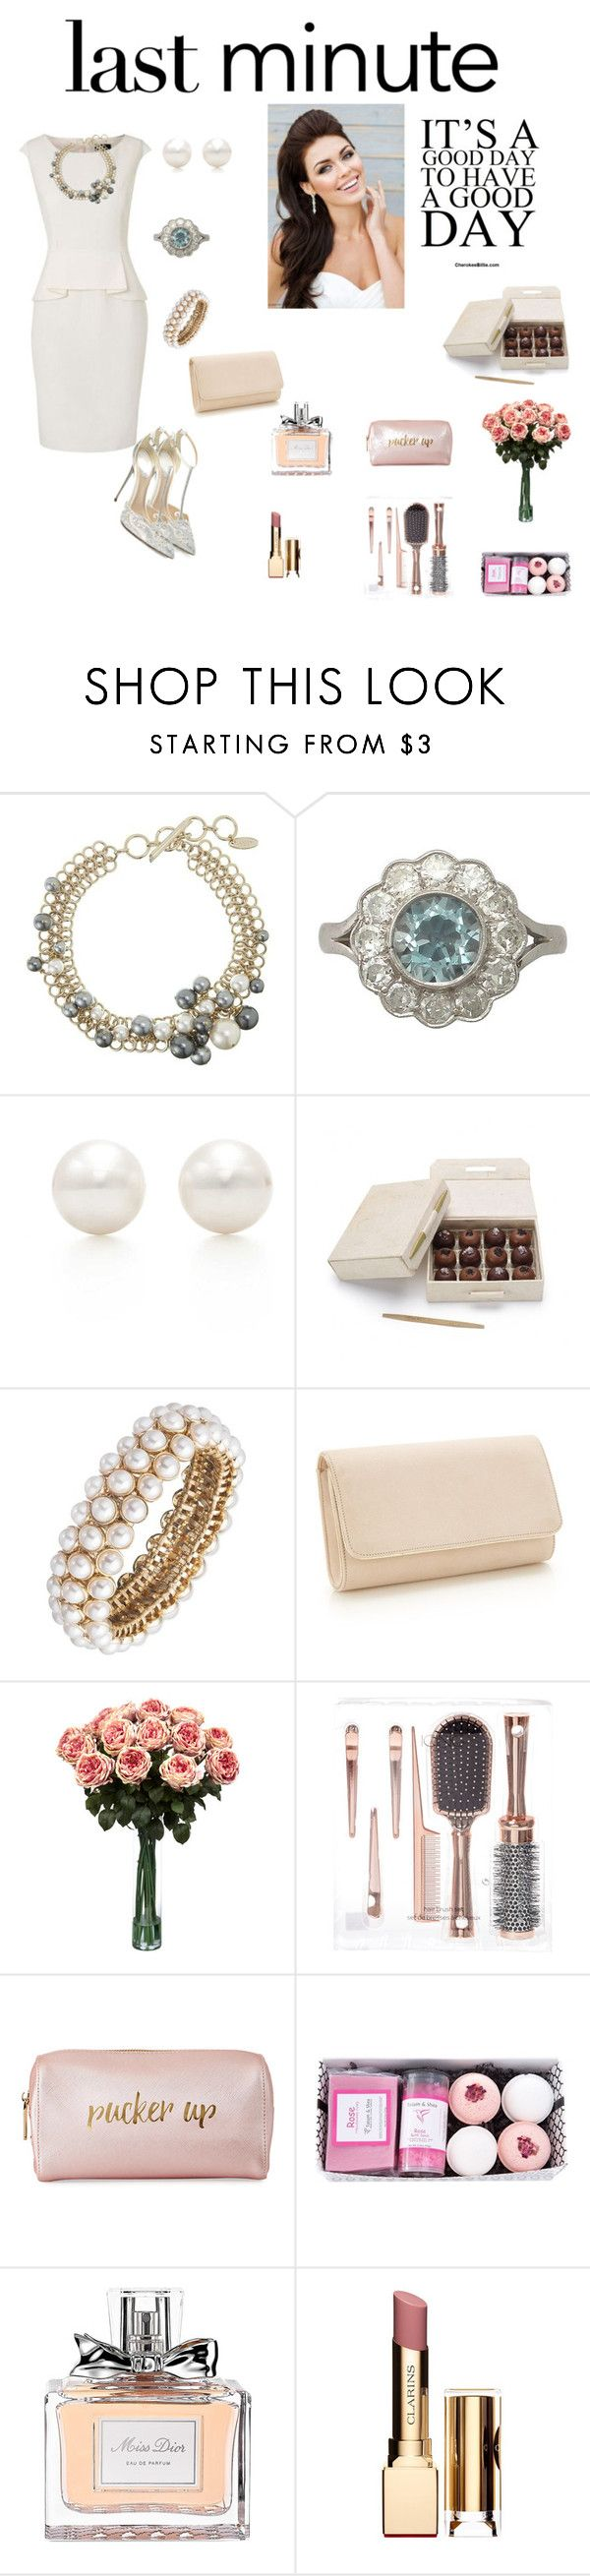 """Presentes de última hora férias"" by daianetavares310 on Polyvore featuring moda, Lanvin, Tiffany & Co., Anne Klein, Christian Louboutin, Nearly Natural, Neiman Marcus, Christian Dior, Clarins e Holidaygifts"